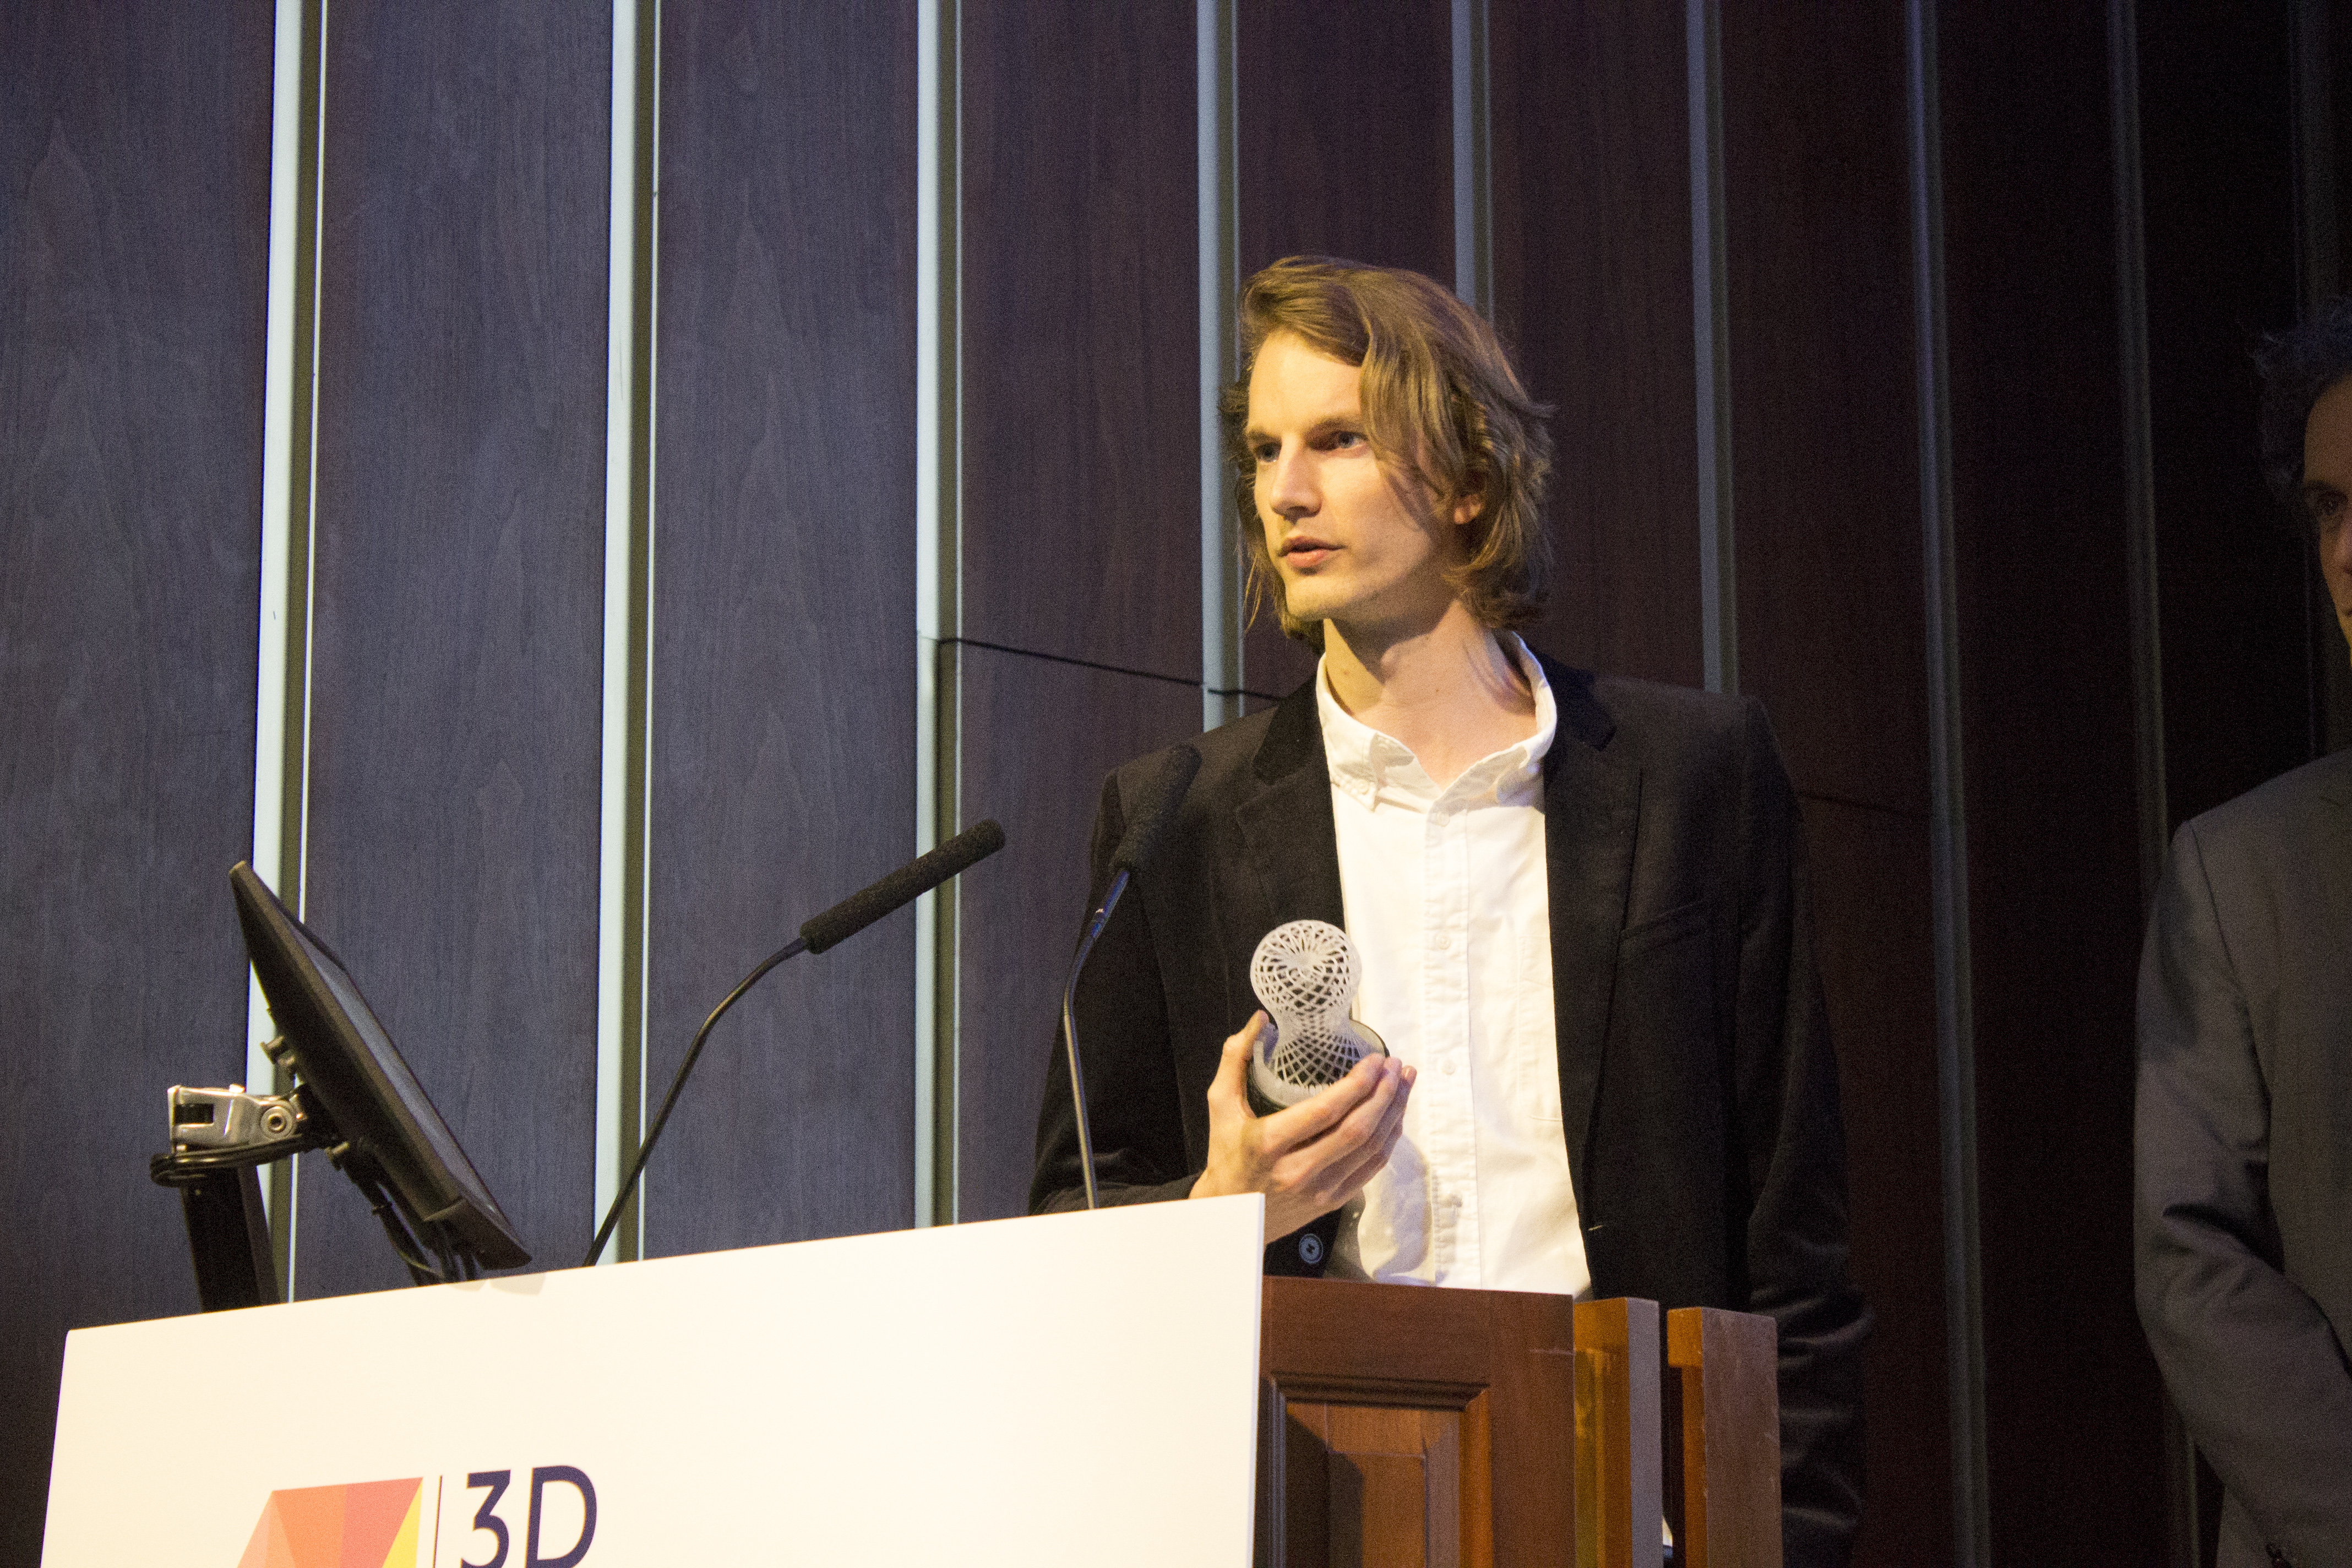 Mirek Classen, Head of Innovation at BigRep's NOWLAB that built the award-winning NERA e-motorcycle, speaks at the 2019 3D Printing Industry Awards. Photo by 3D Printing Industry